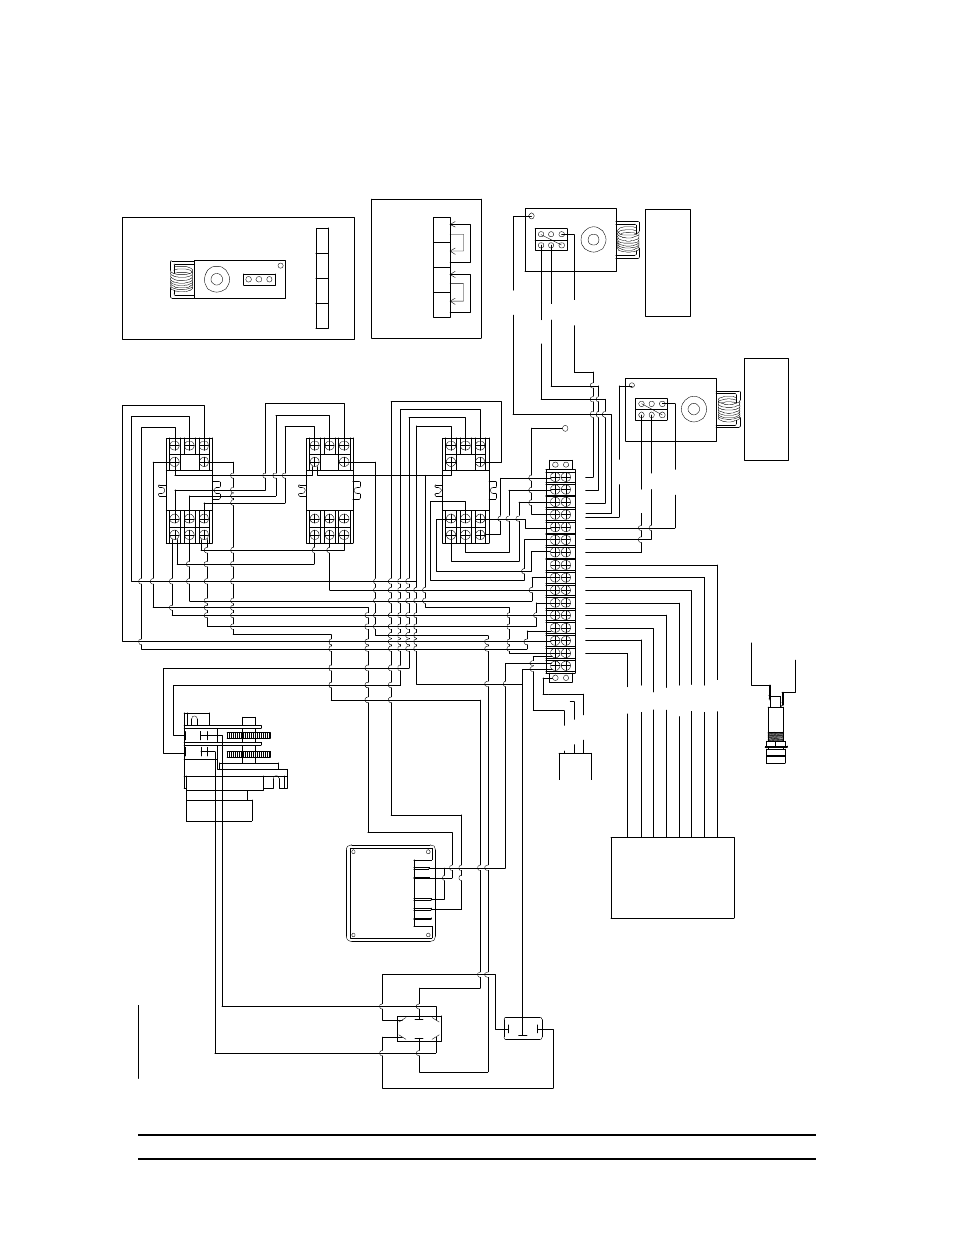 wiring a thermostat with 4 wires